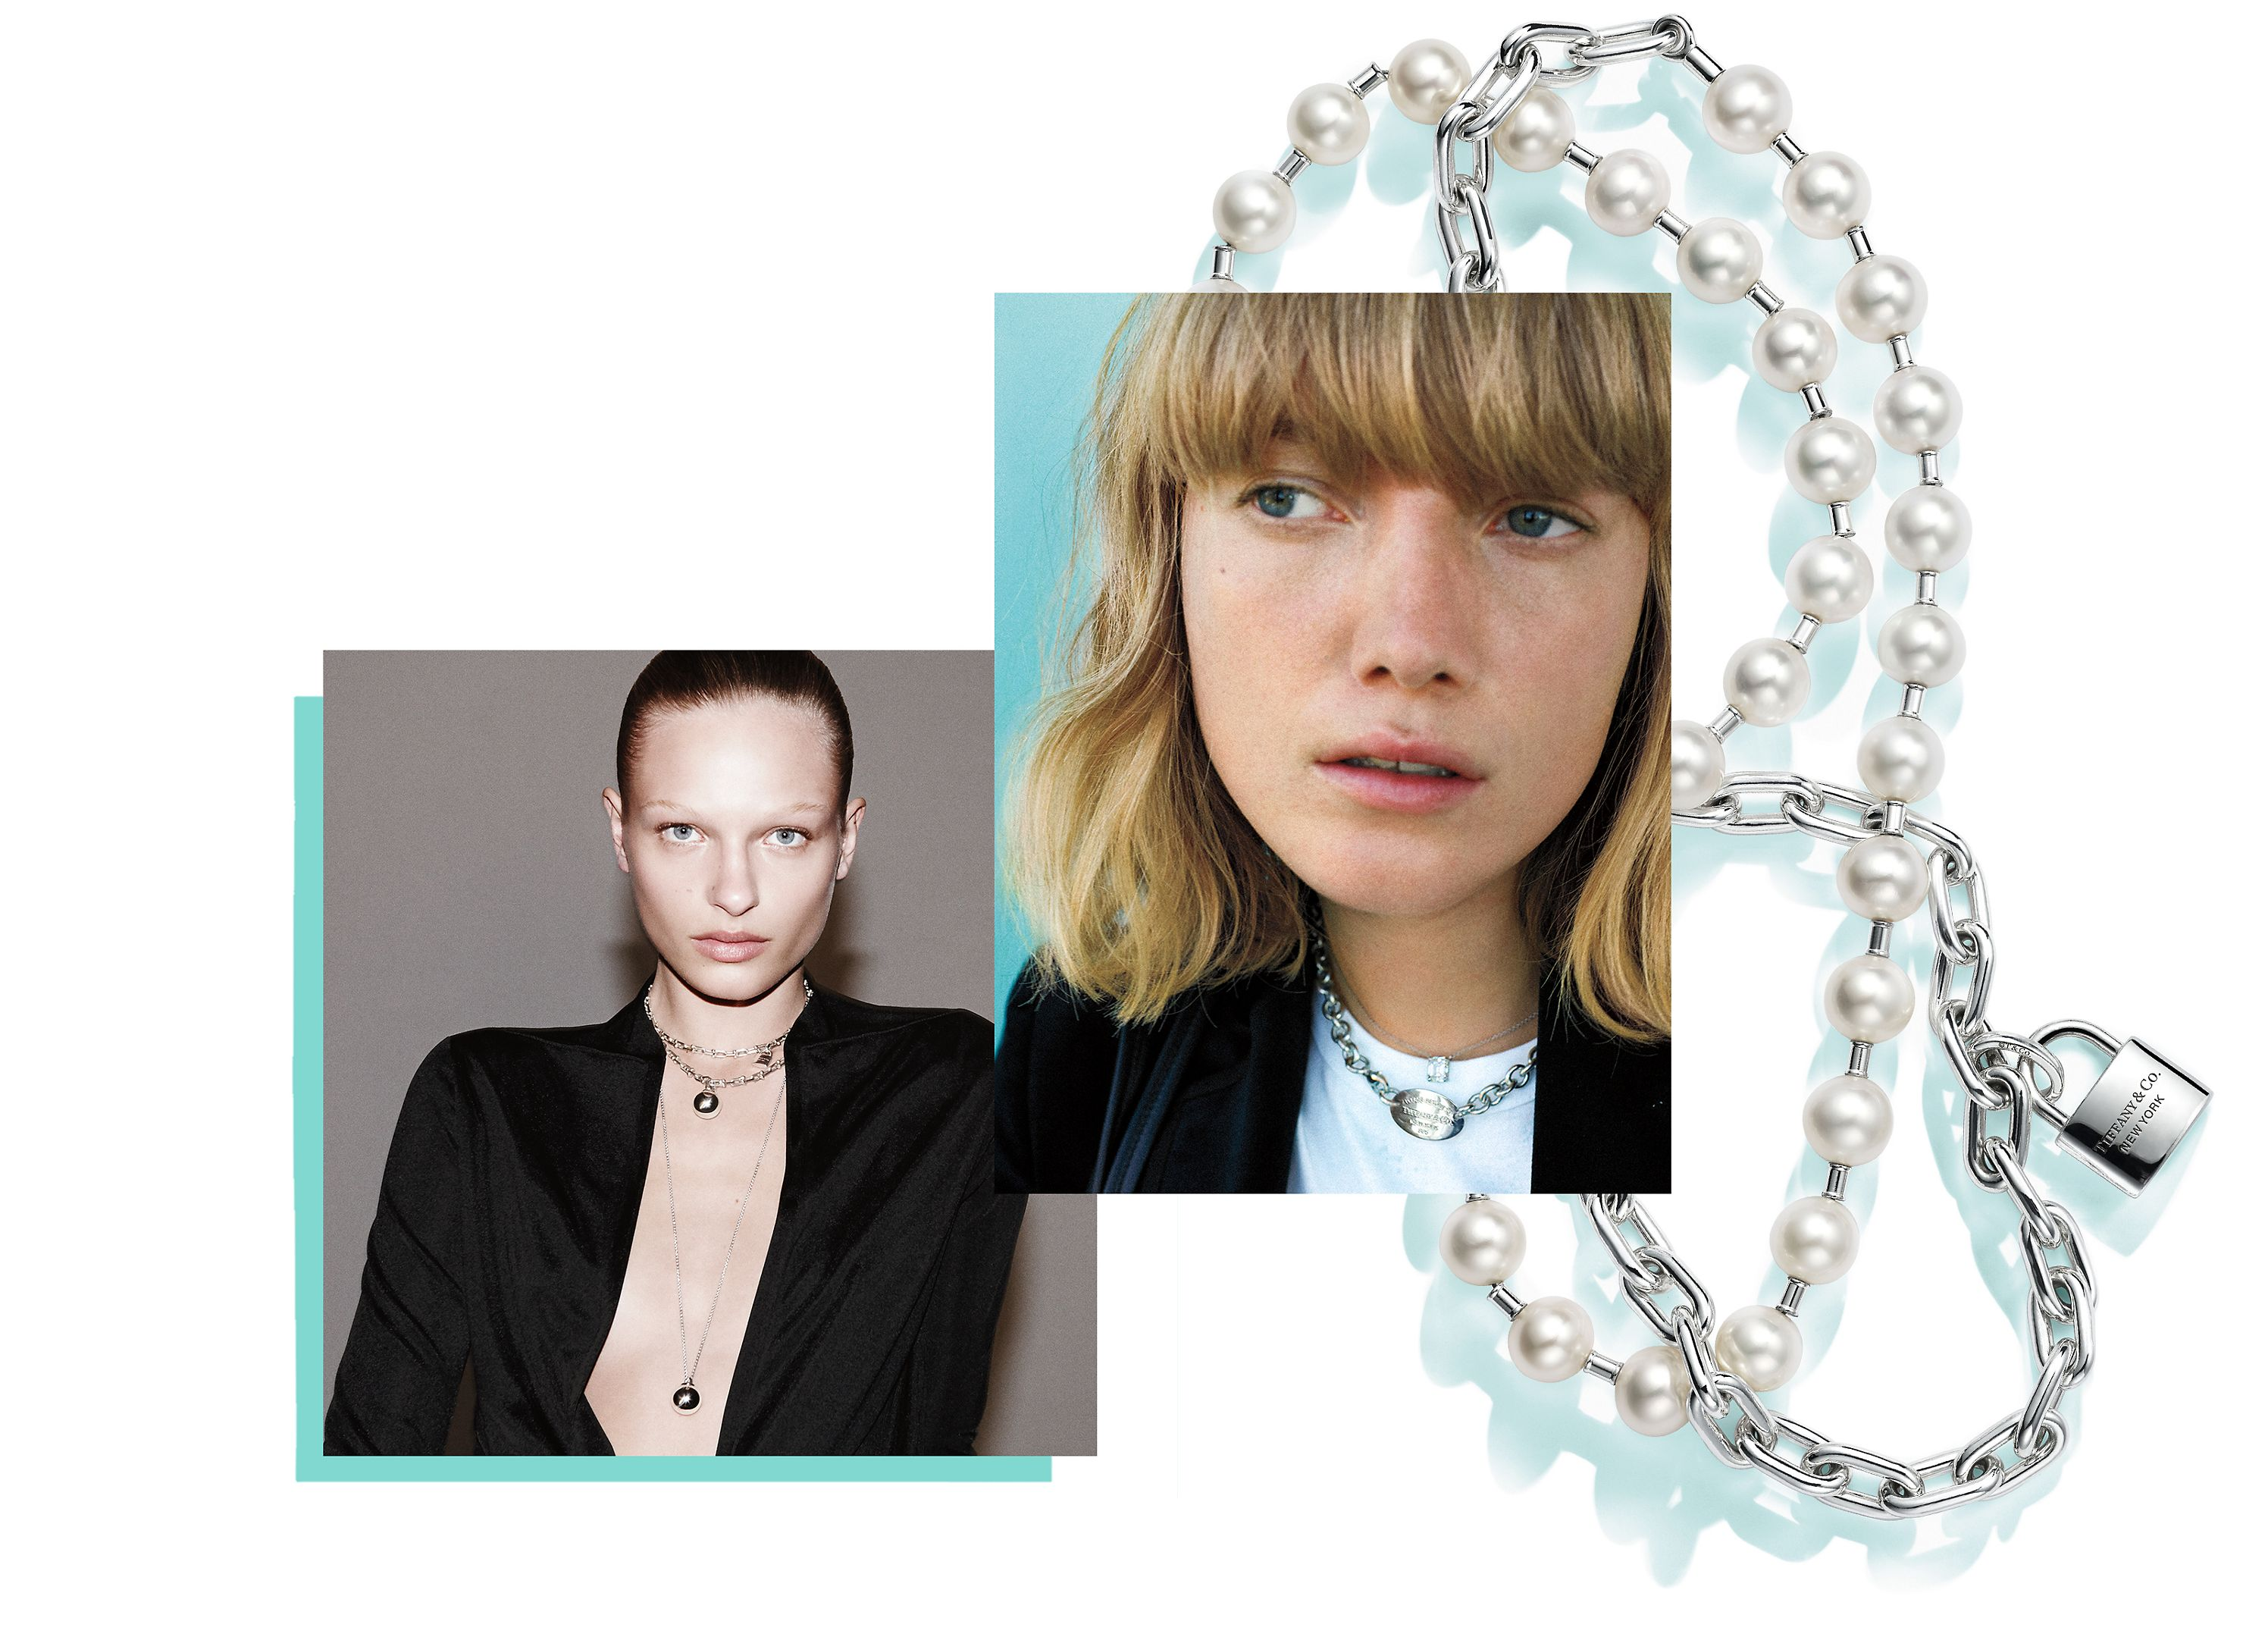 When it comes to necklaces, jewelry lovers are catching onto the more-is-more approach.